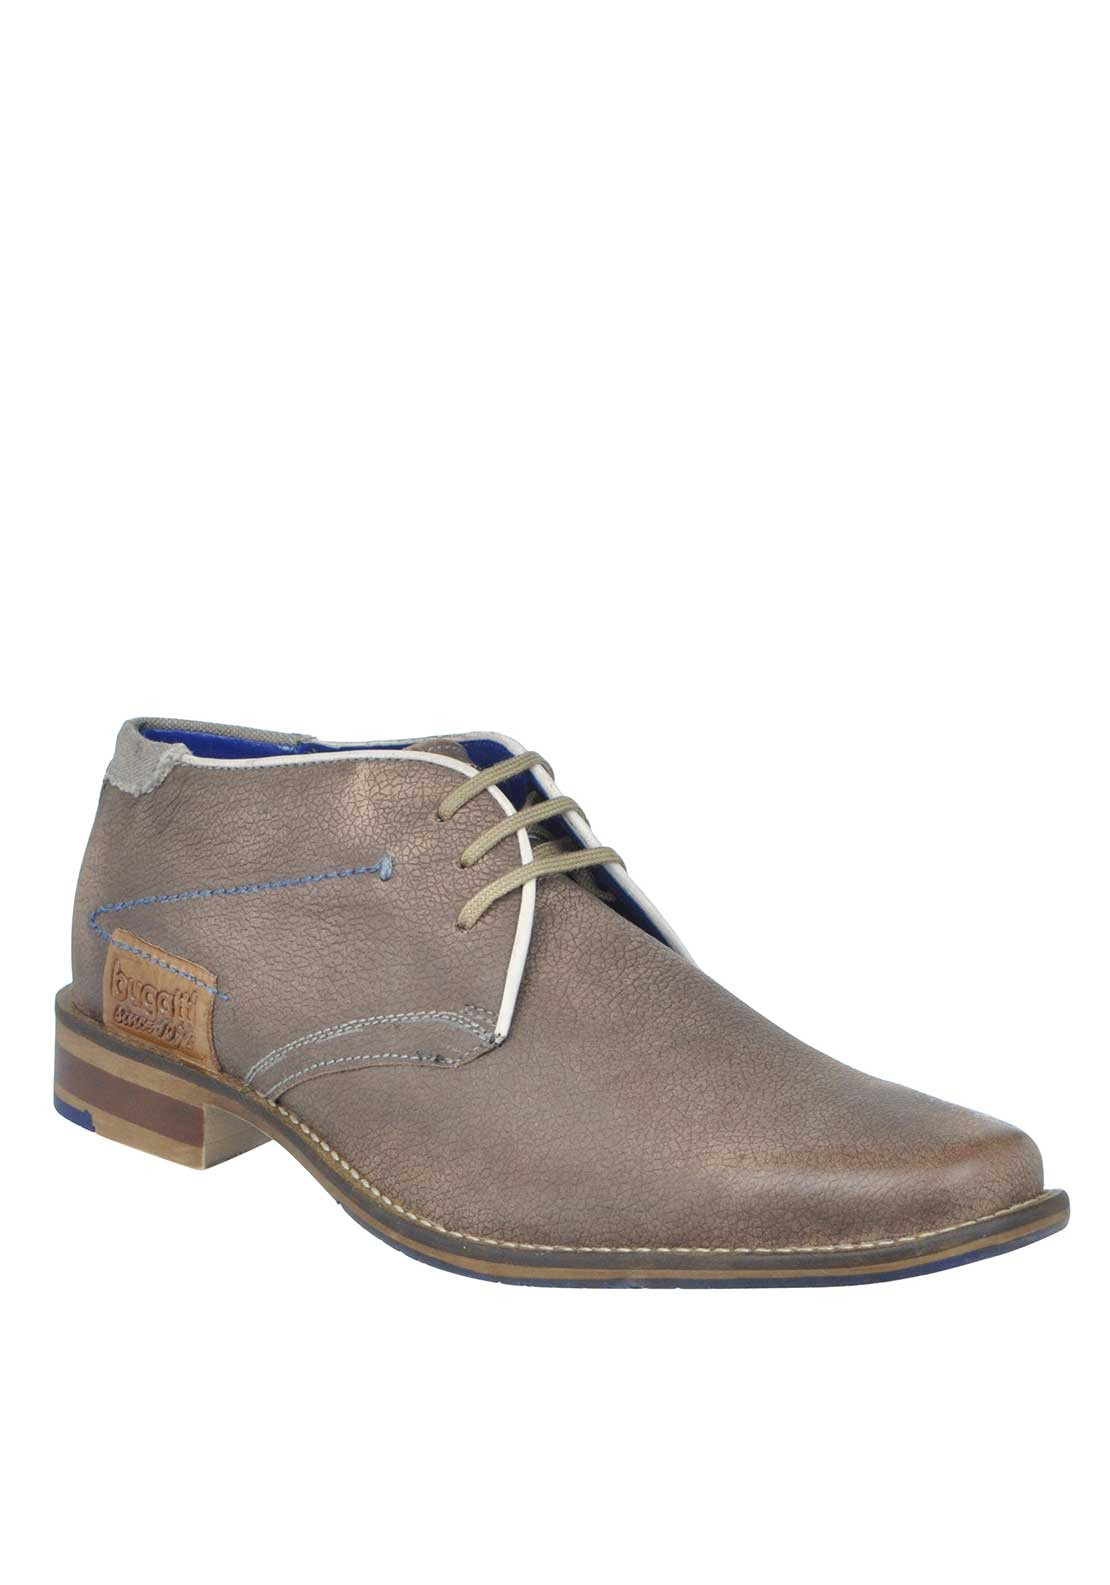 Bugatti Leather Lace Up Desert Boot, Pale Brown